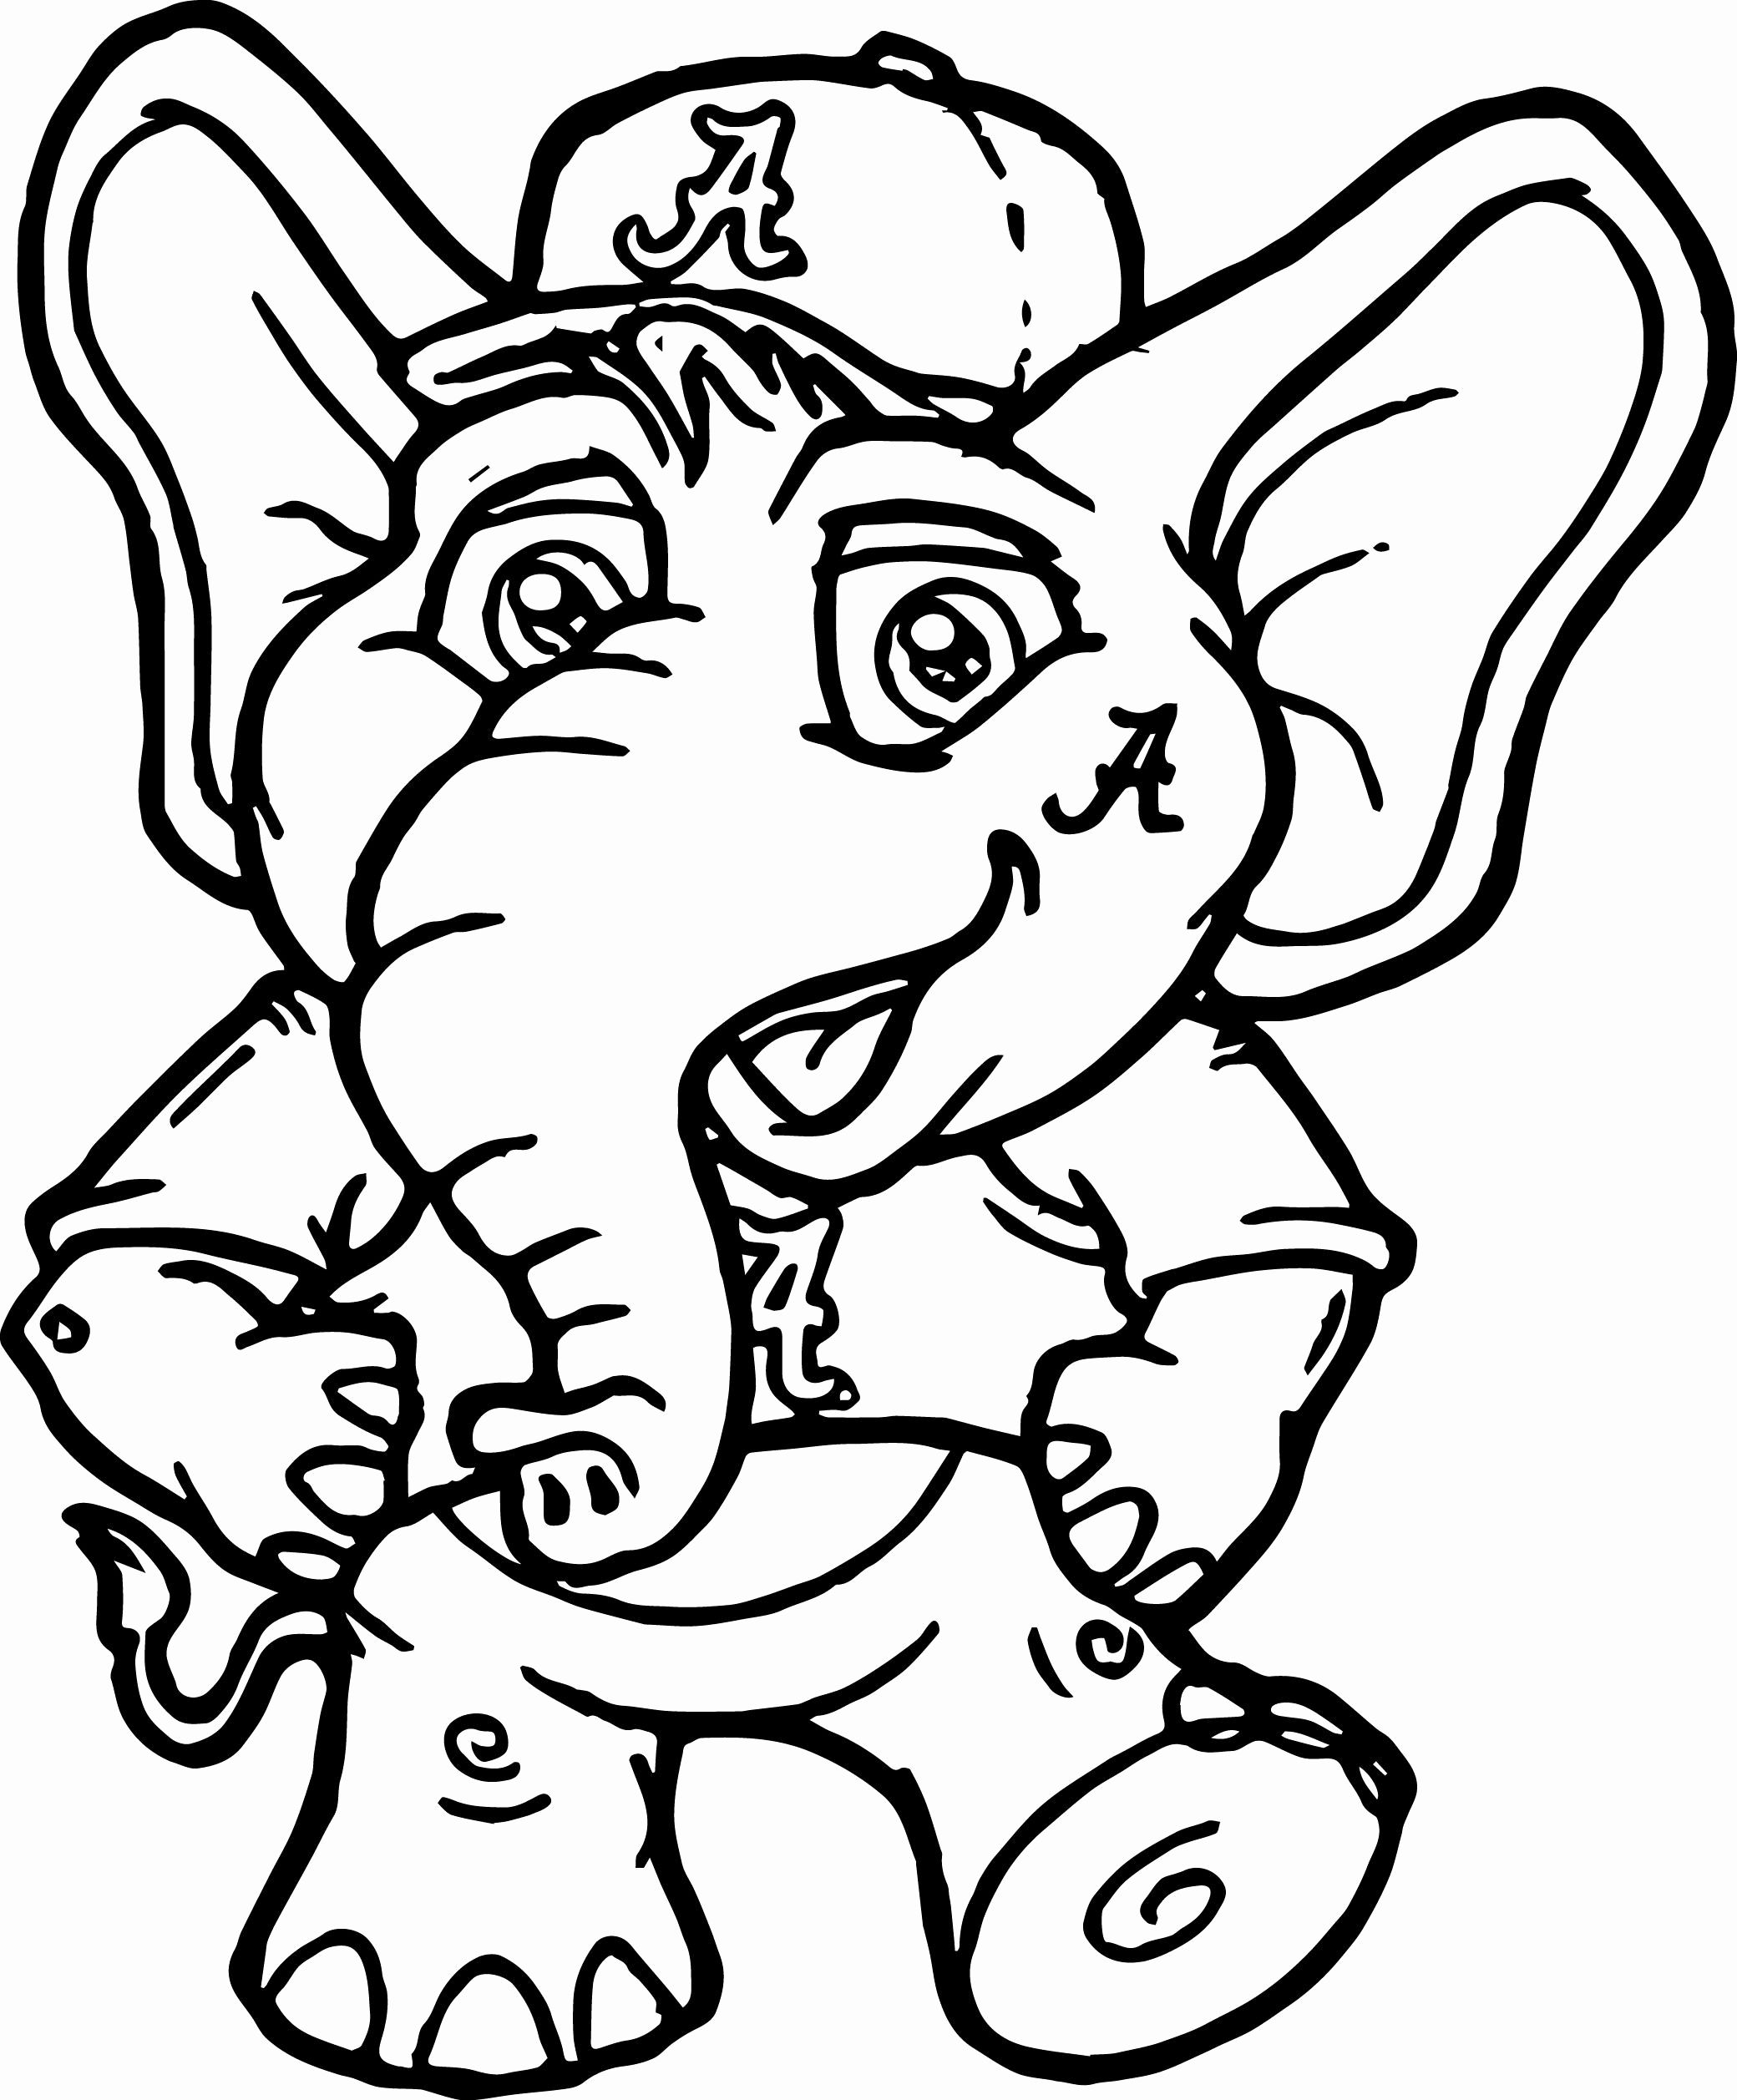 Alabama Crimson Tide Football Coloring Pages Fresh Hi My Friends You Can Find Here Alabama Football Coloring Pages Elephant Coloring Page Animal Coloring Pages